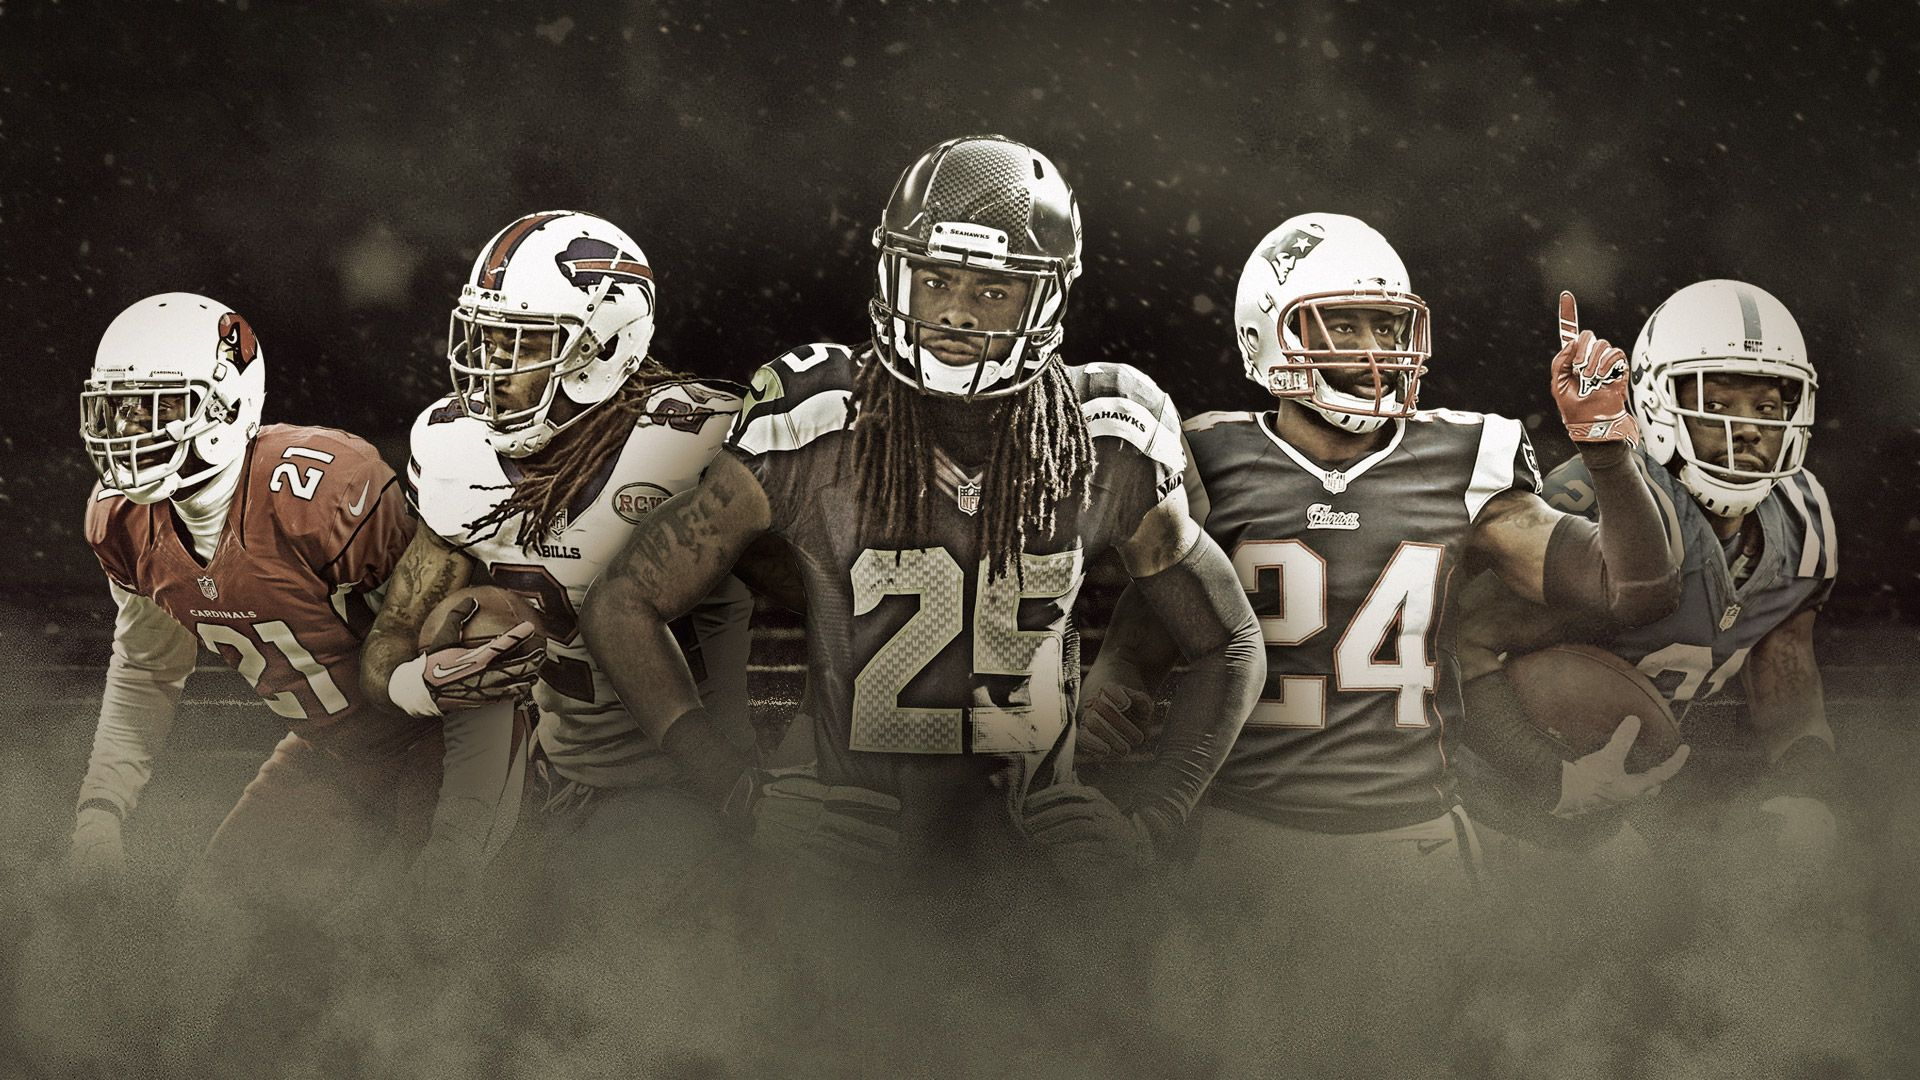 Madden Nfl Wallpapers